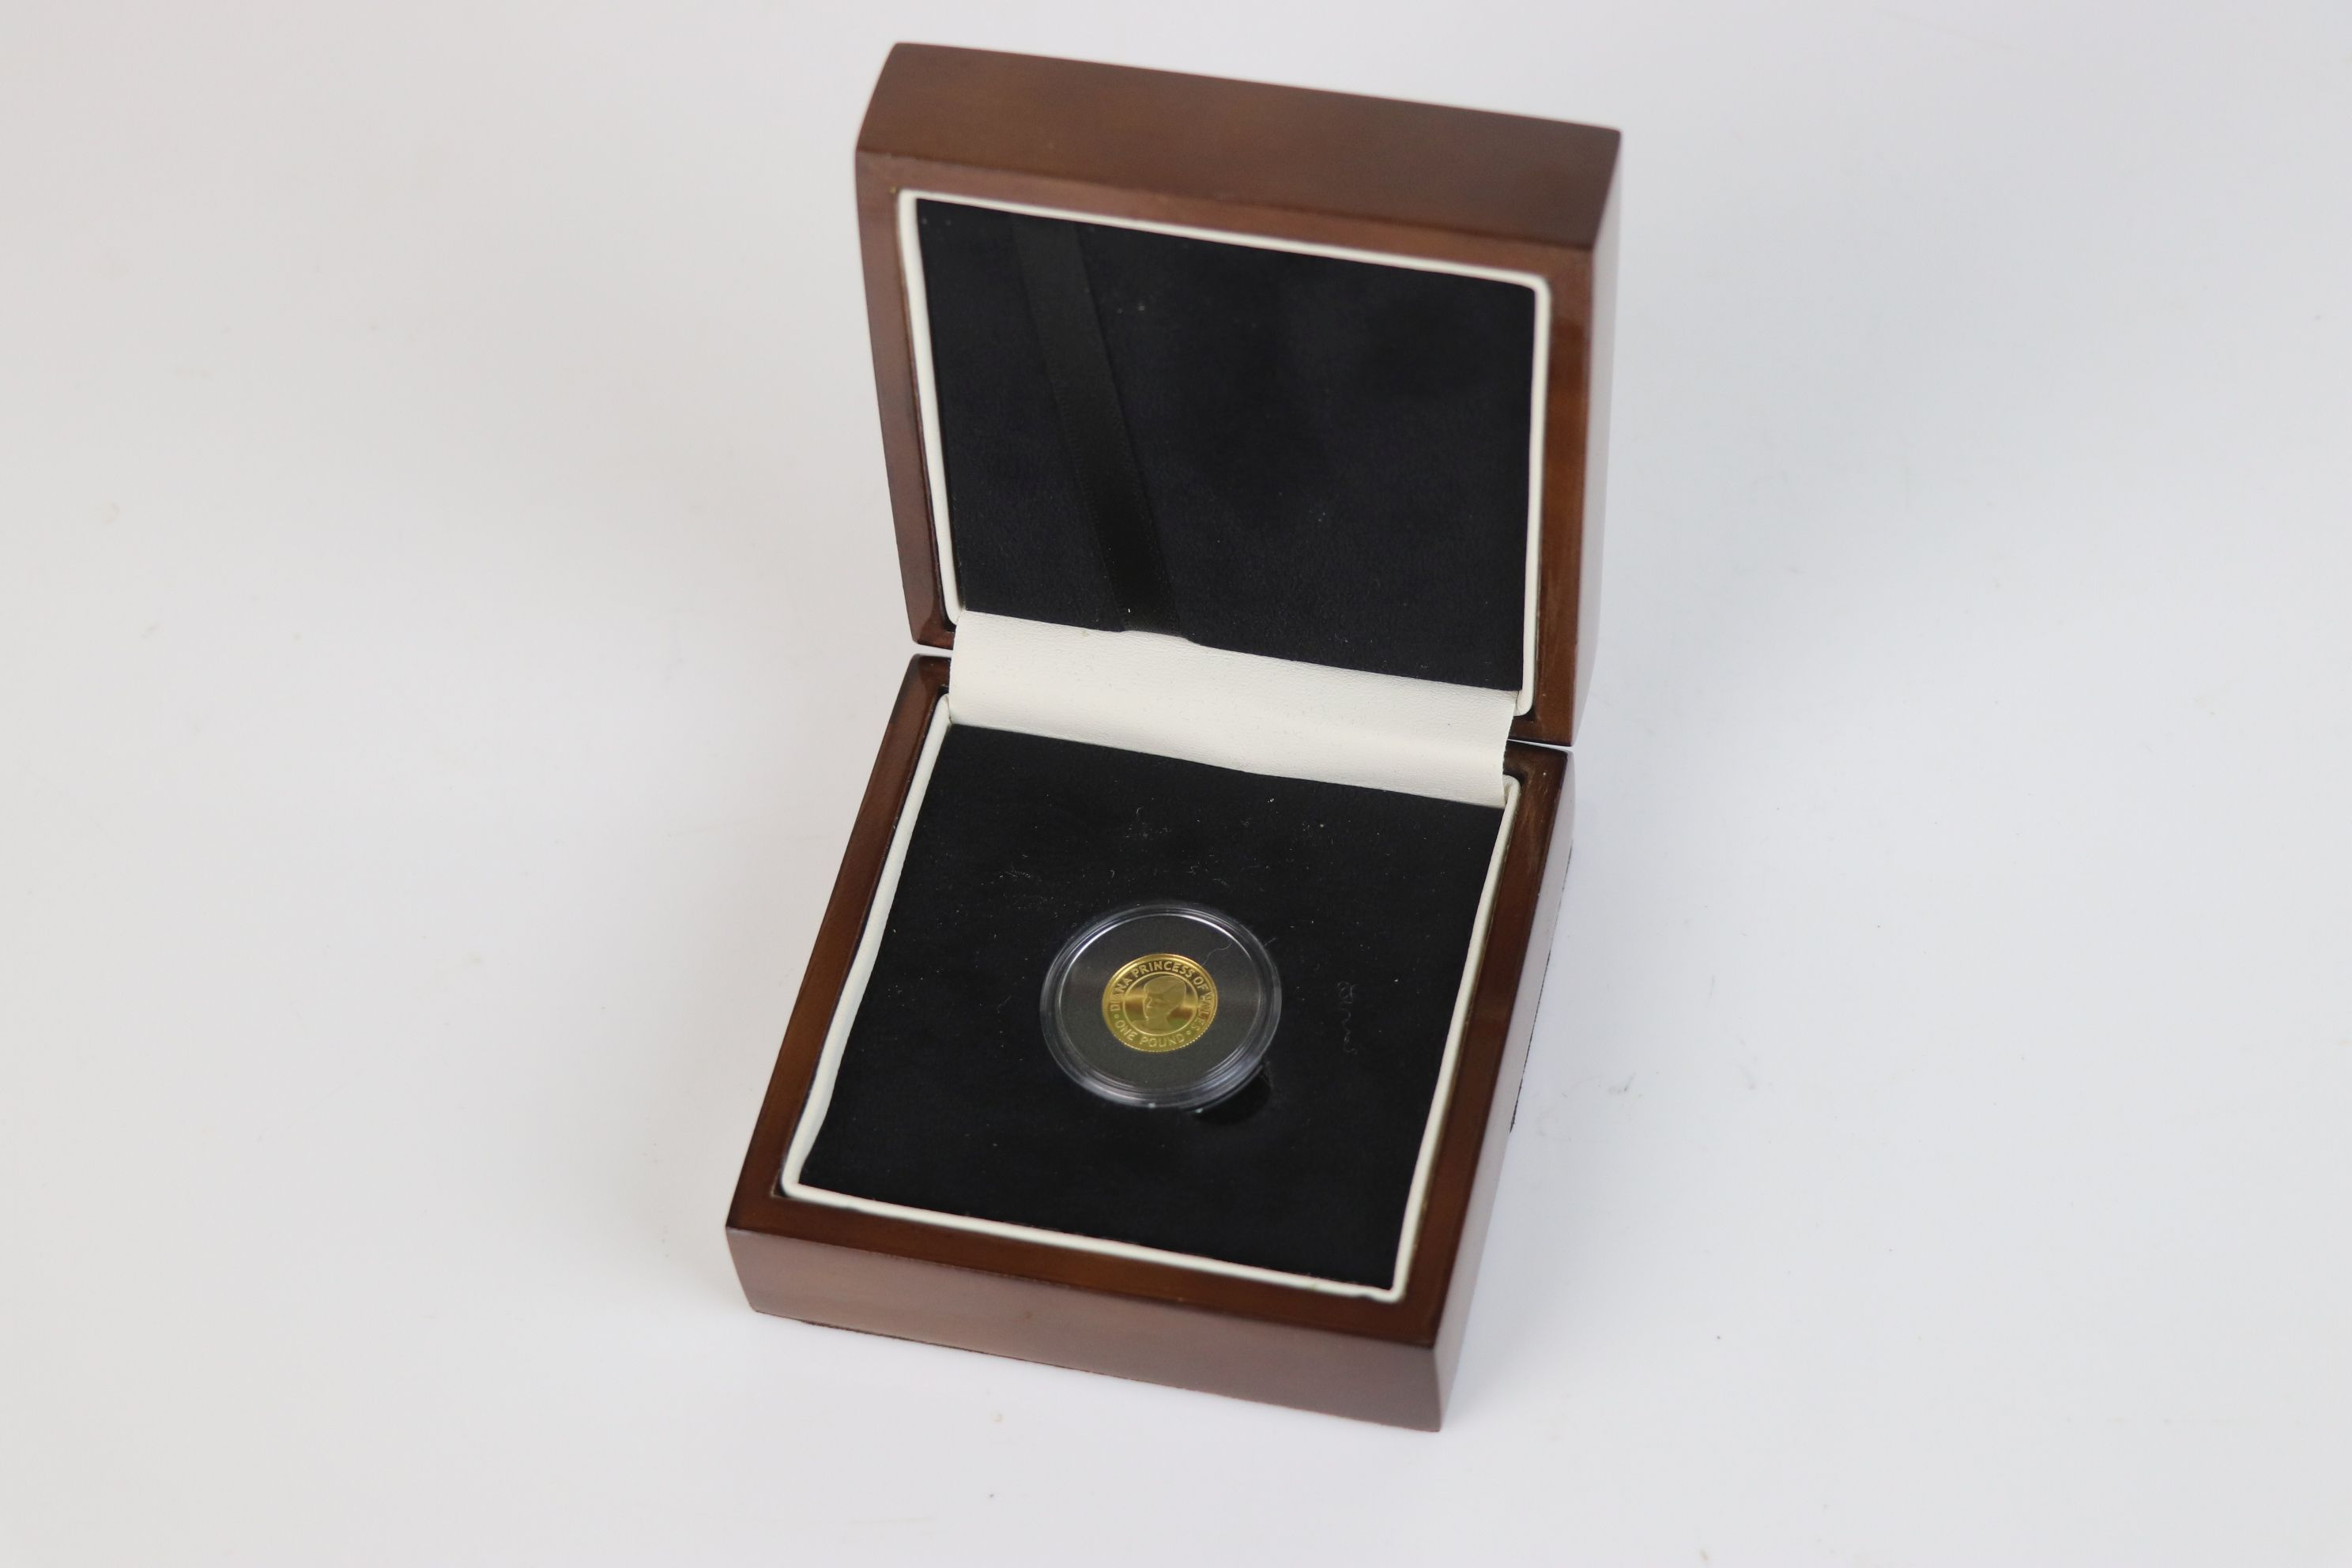 A Queen Elizabeth II Bailiwick of Jersey Diana Princess of Wales Commemorative £1 gold coin dated